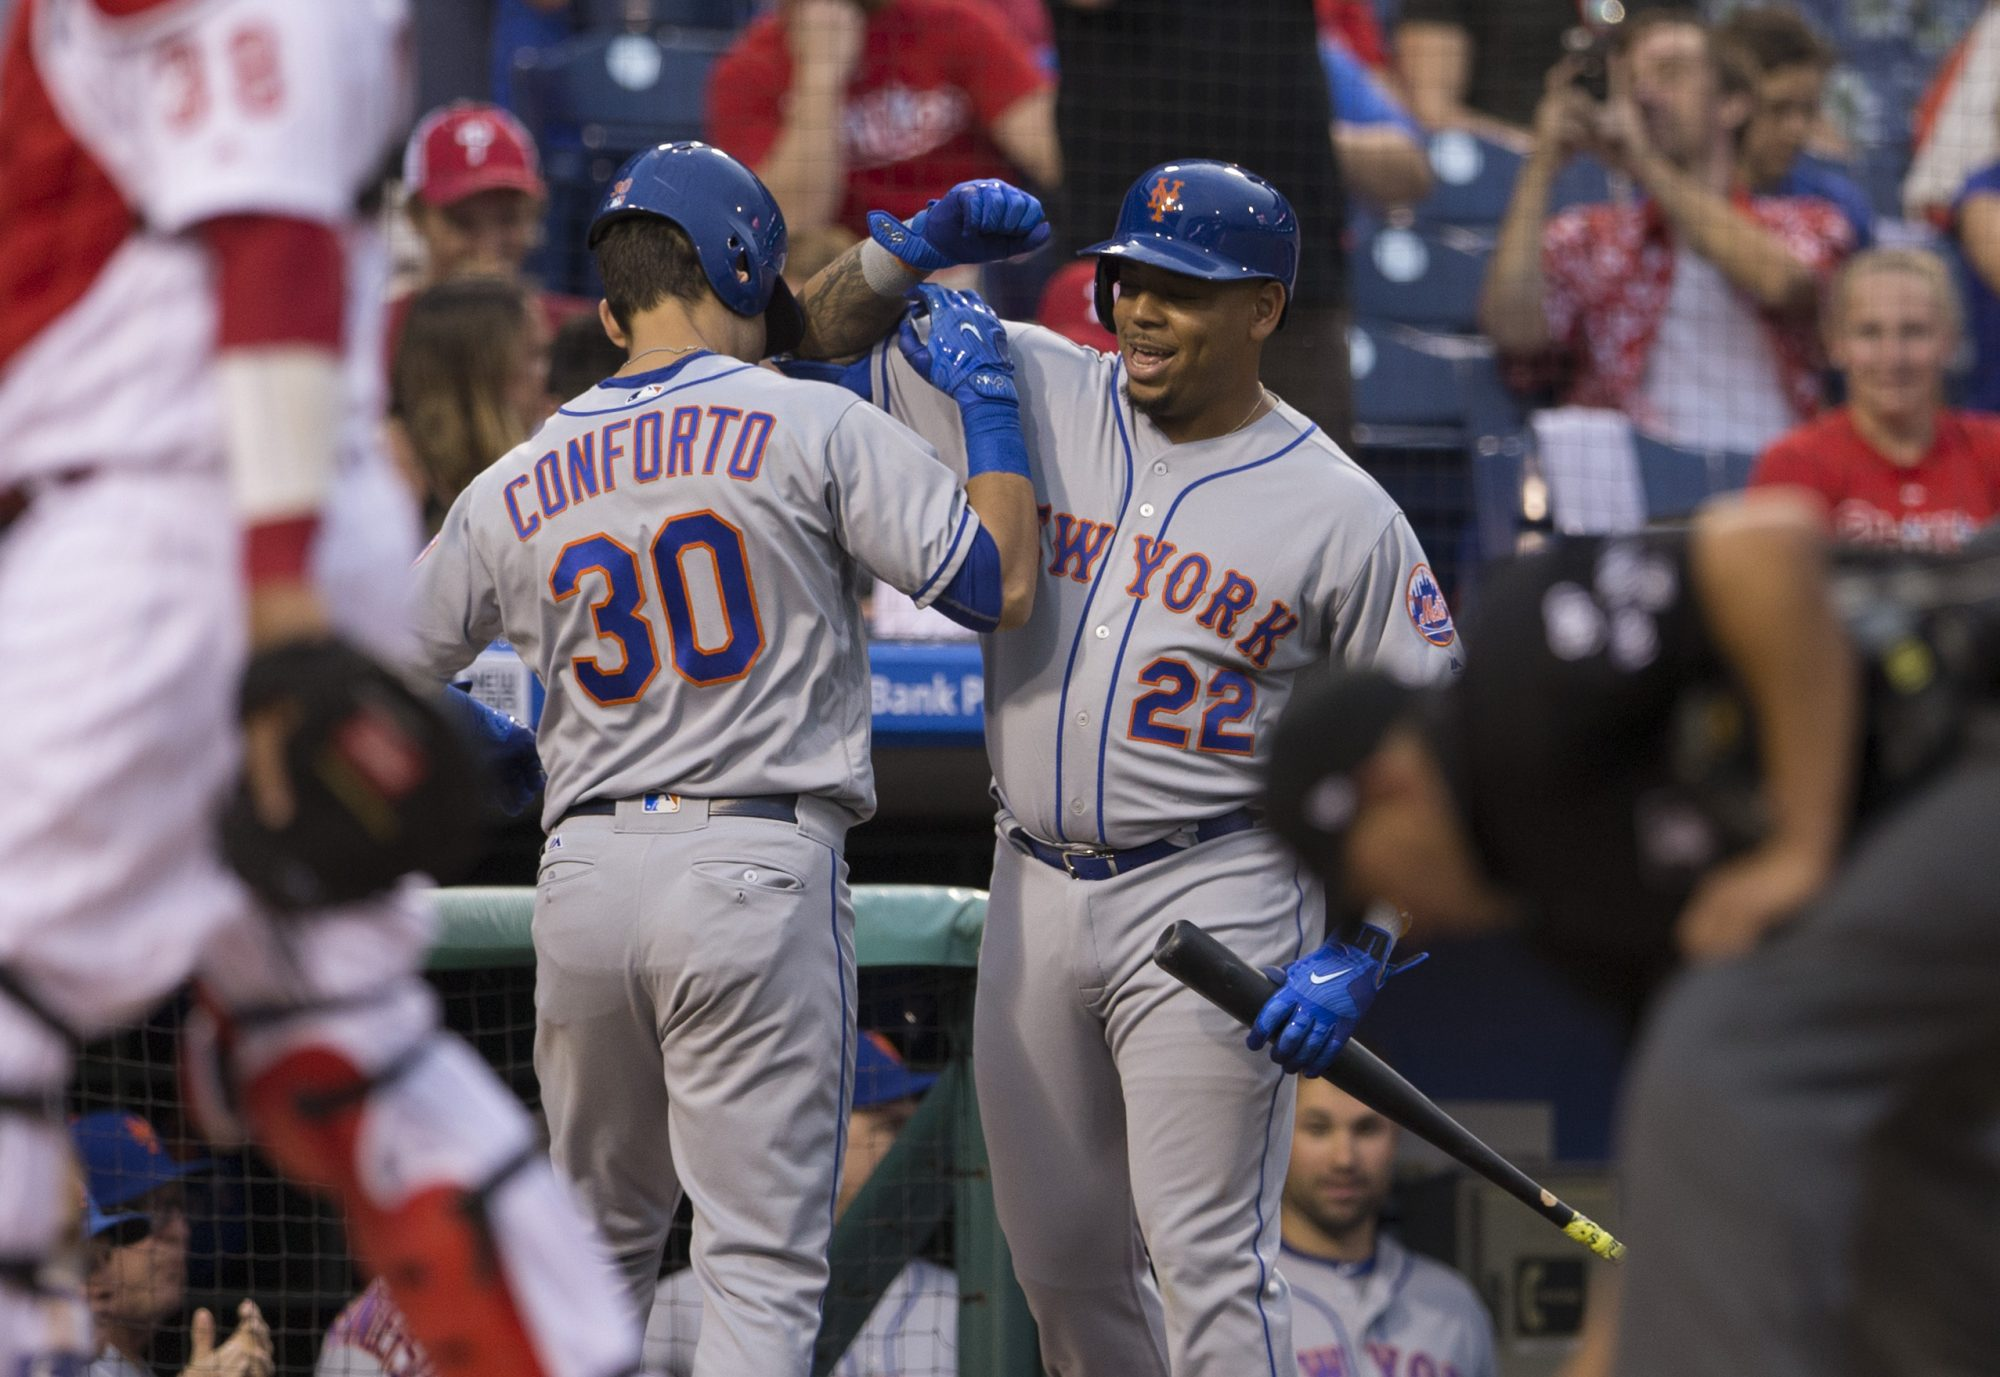 New York Mets: Whirlwind Debut For First Baseman Dominic Smith 2